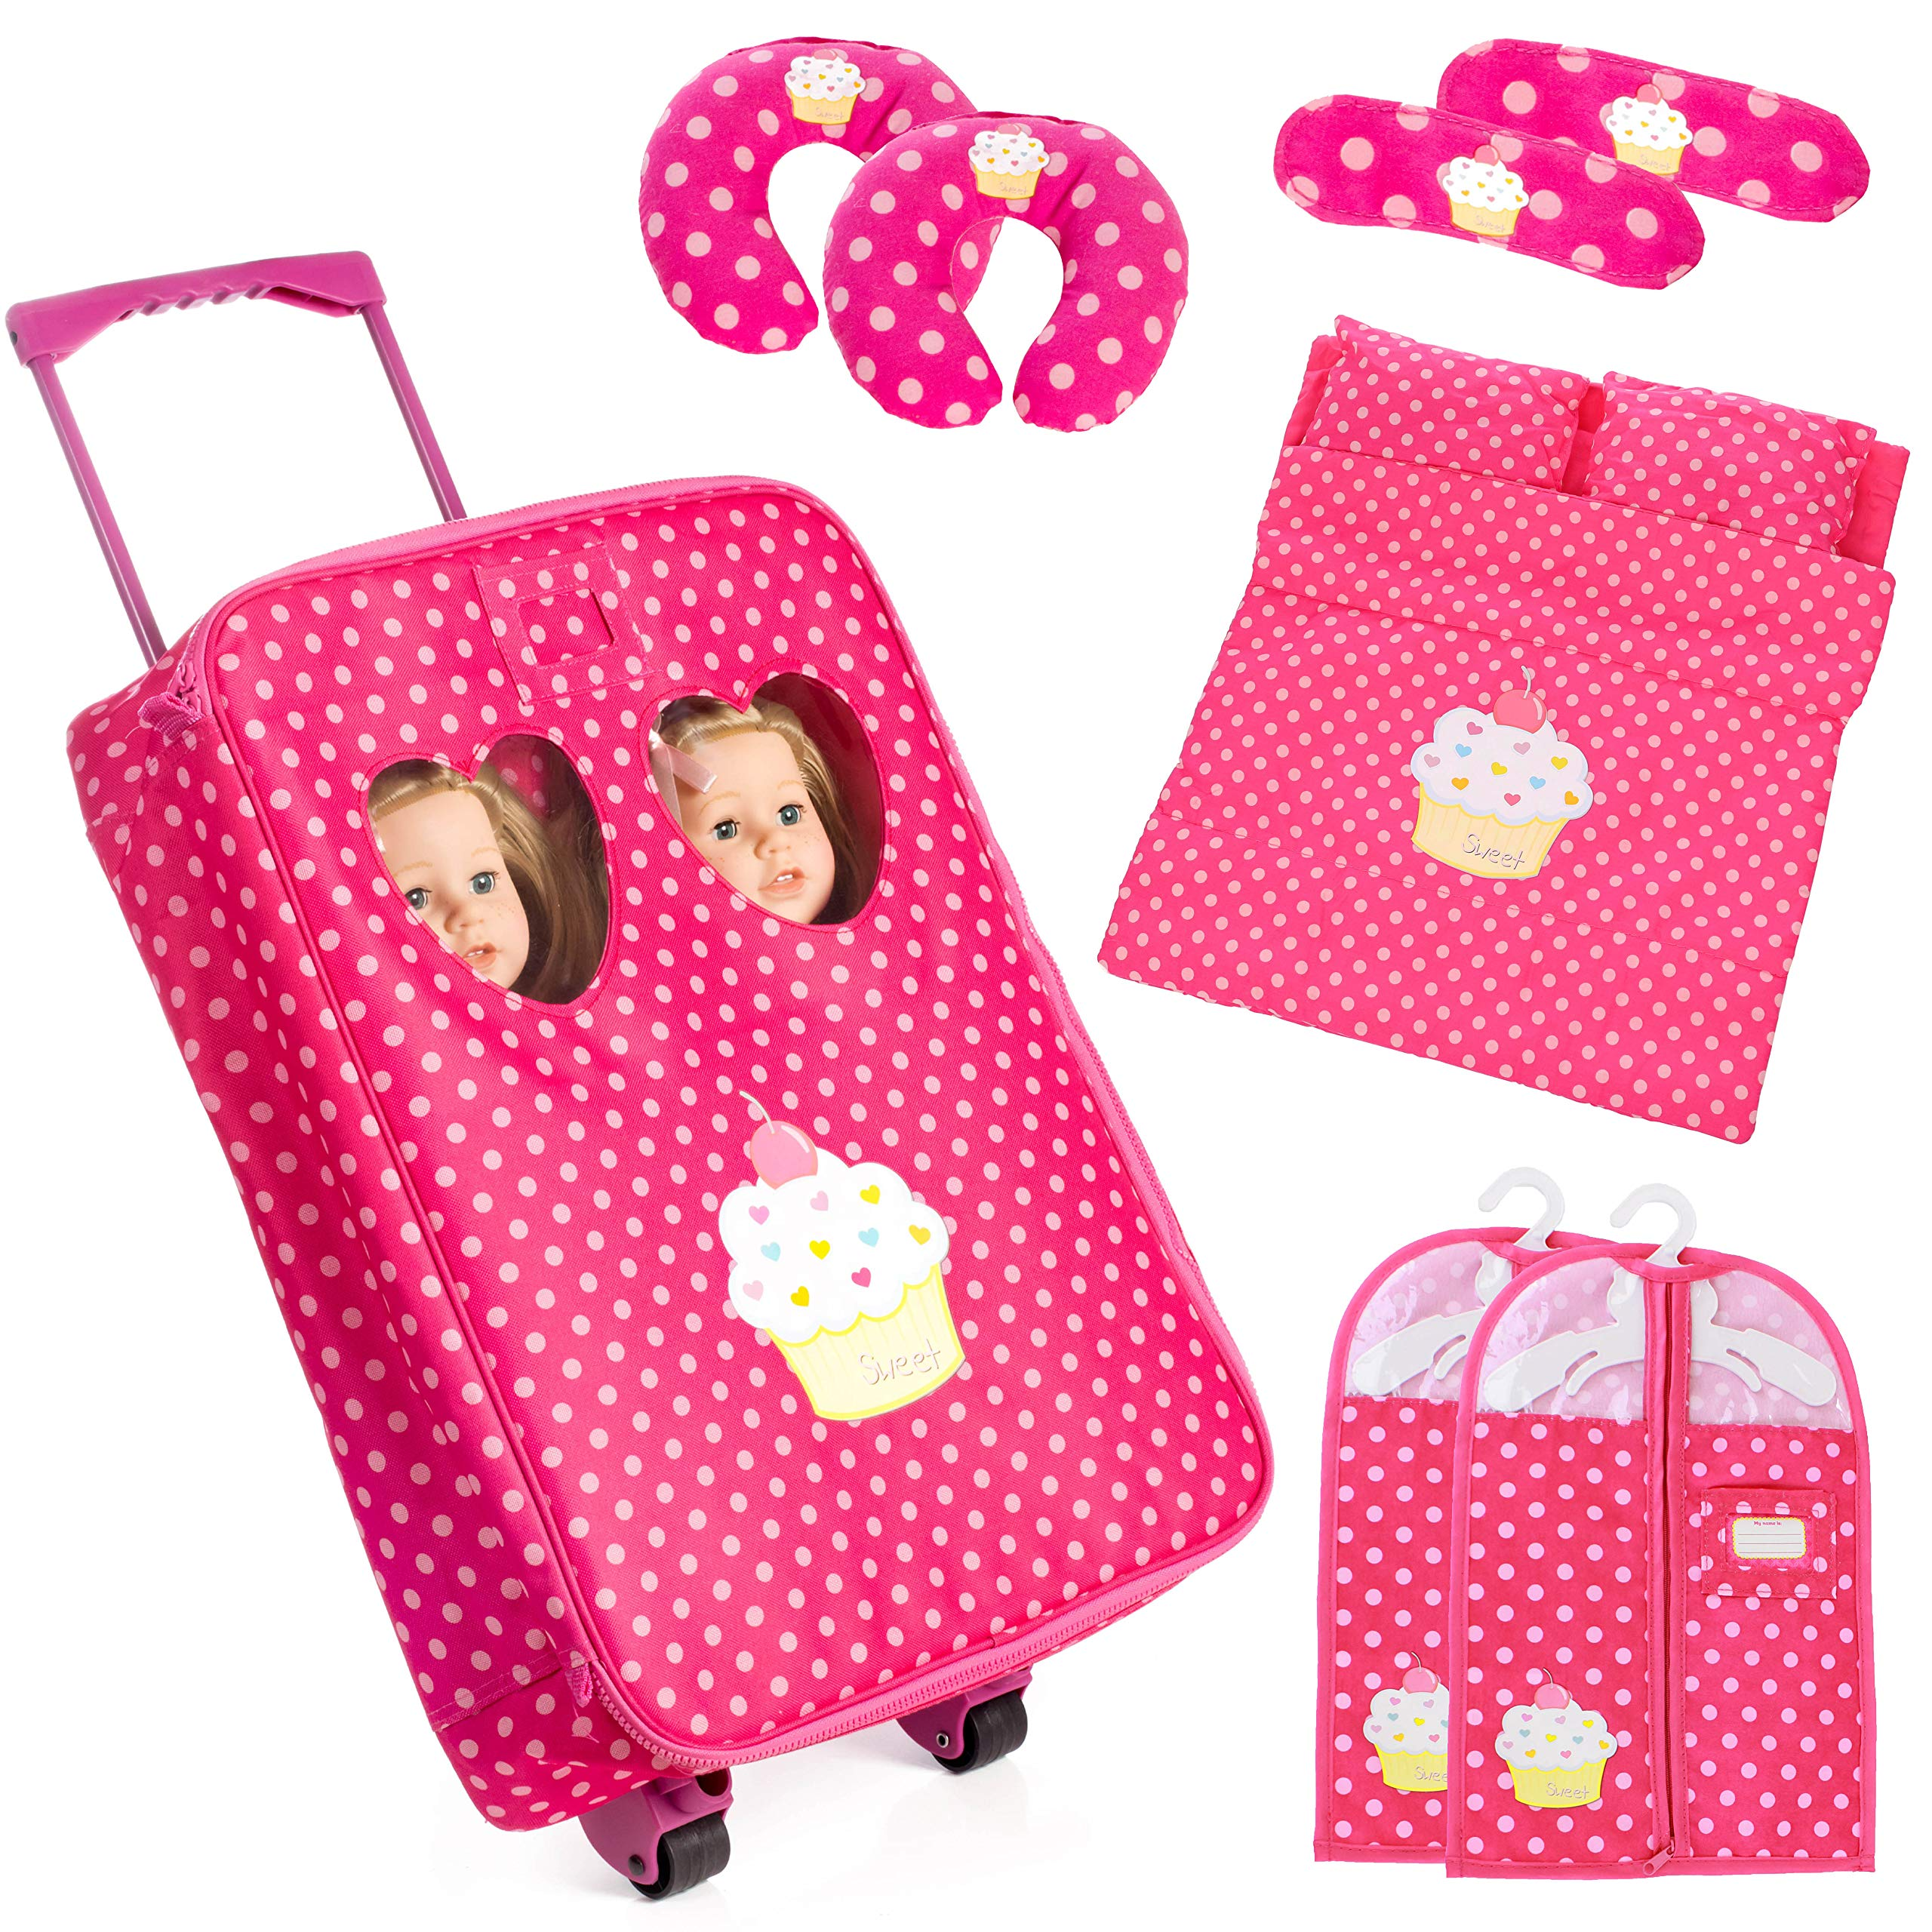 Beverly Hills Doll Collection 7 Piece Twin Doll Traveling Trolley Set fits 2 18 American Girl Dolls Includes Twin Sleeping Bags and AccessoriesDoll Not Included